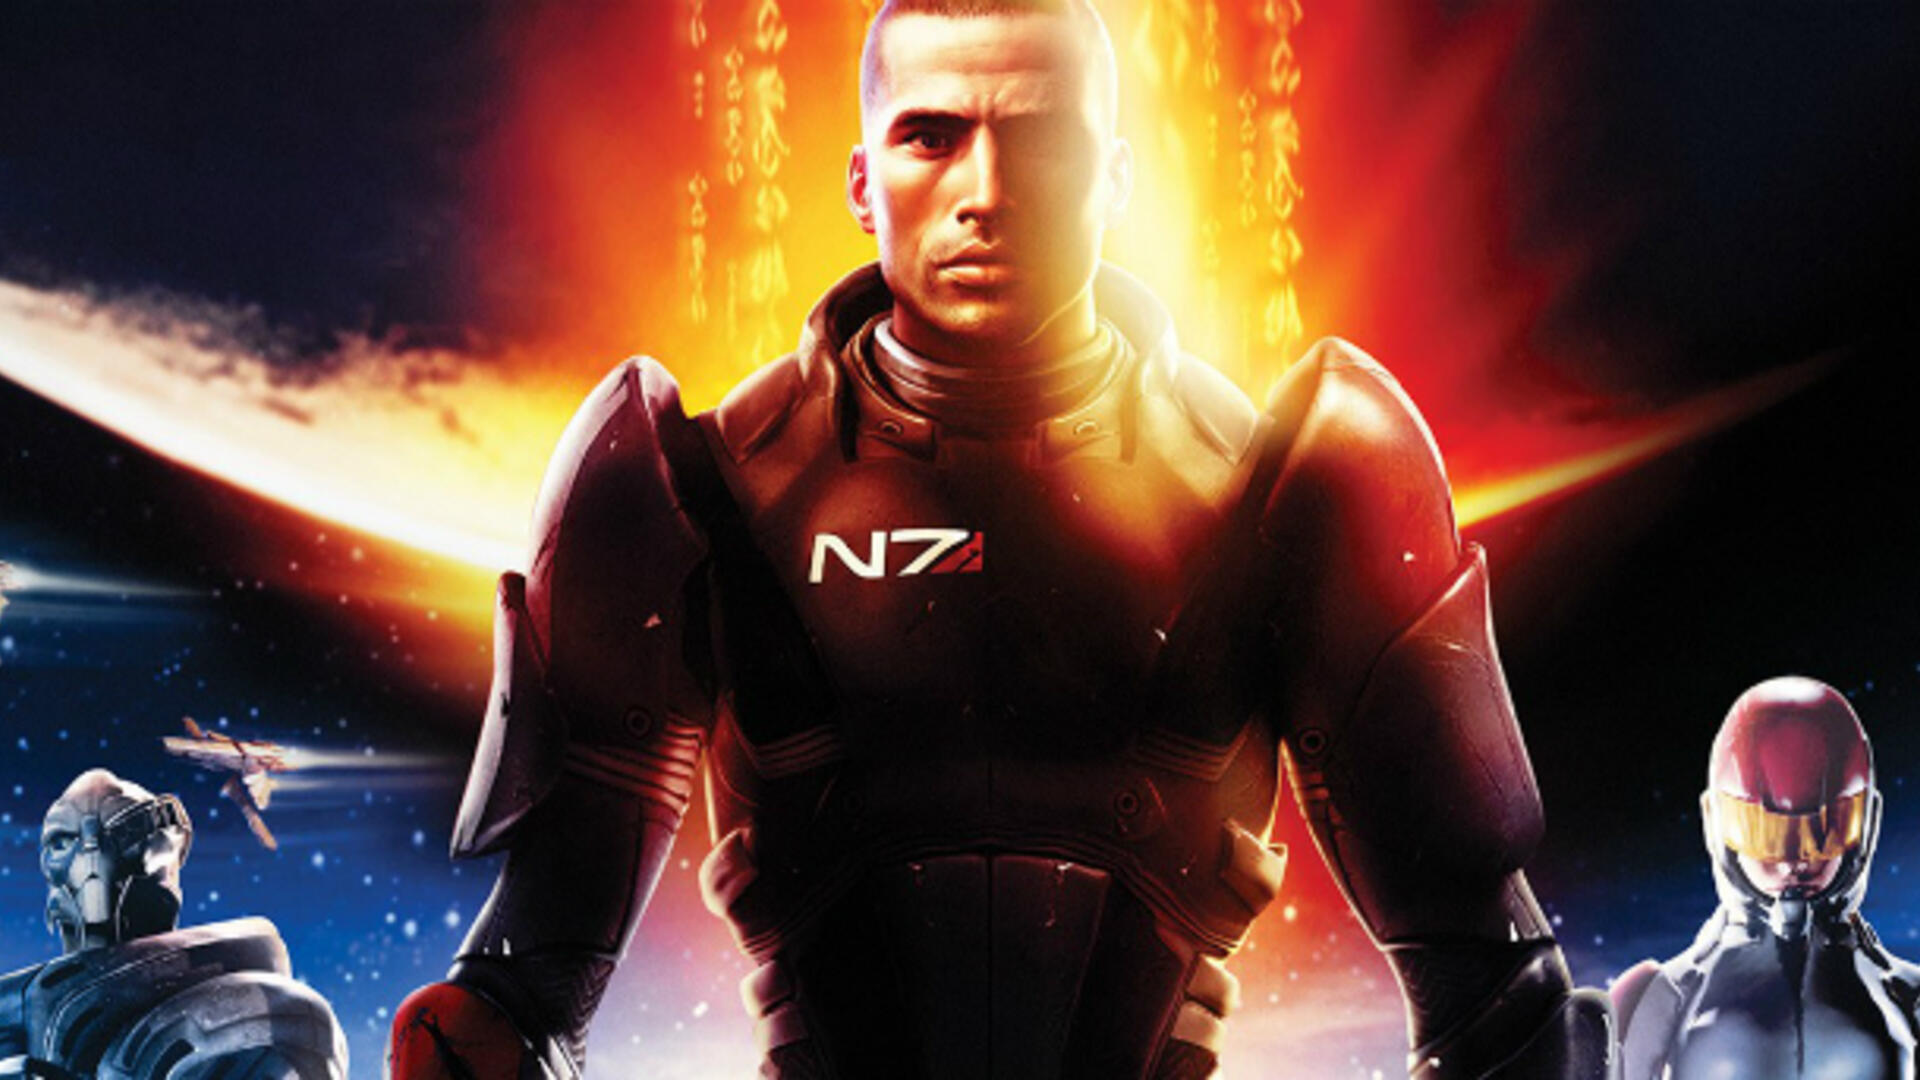 The Top 25 RPGs of All Time #15: Mass Effect